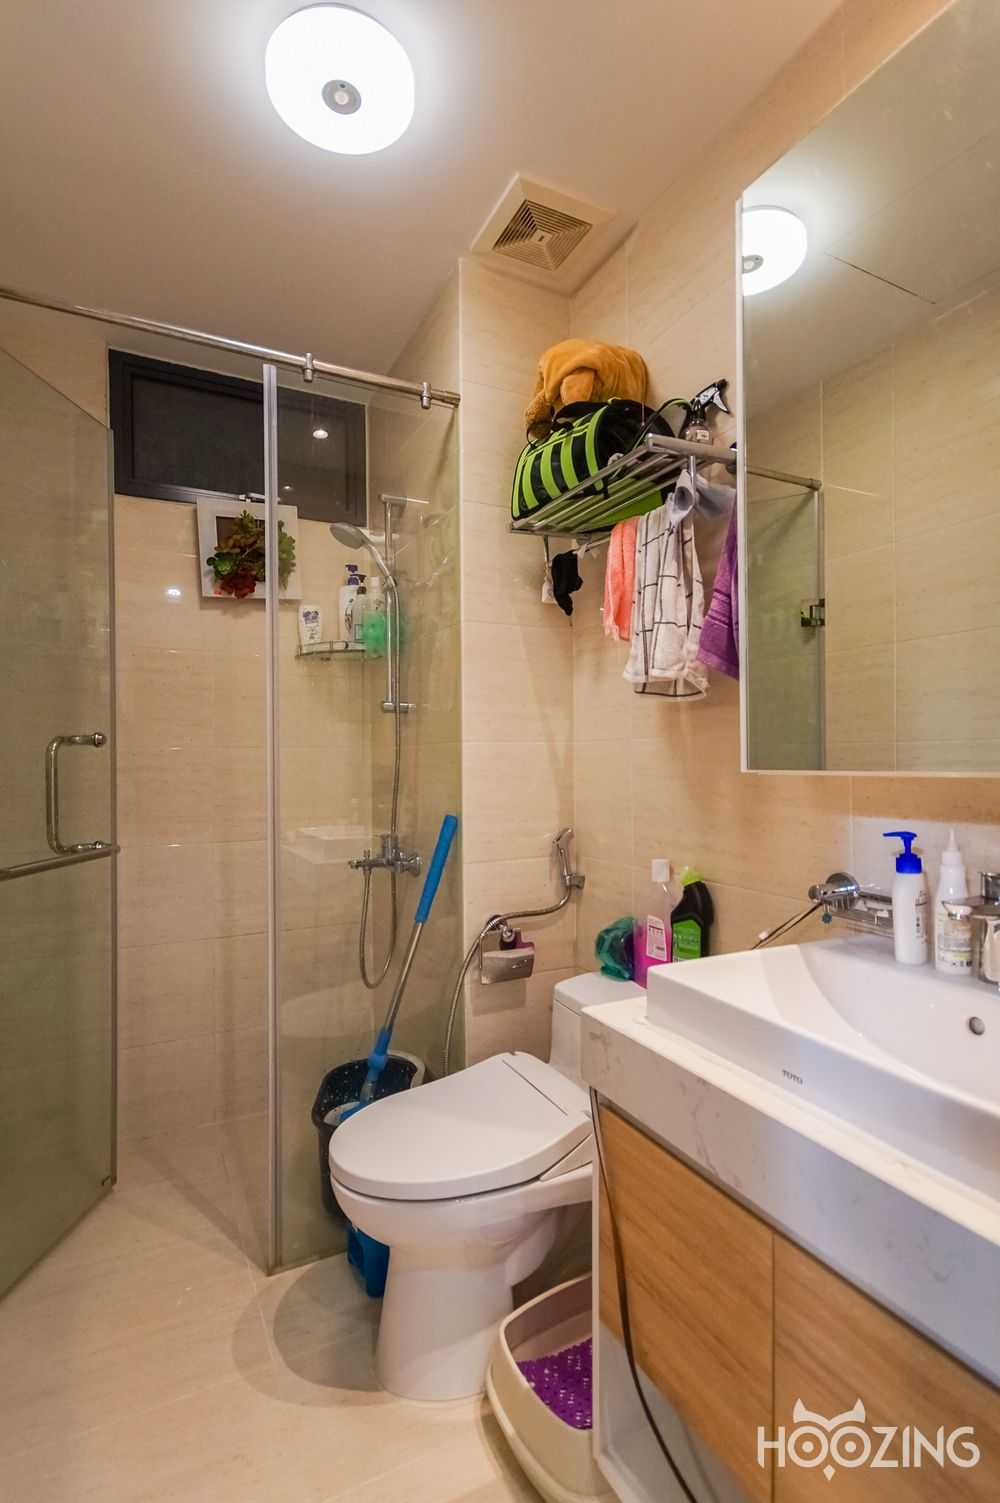 New City Thu Thiem Apartment 2 Bedrooms for Sale - All-Inclusive Fee